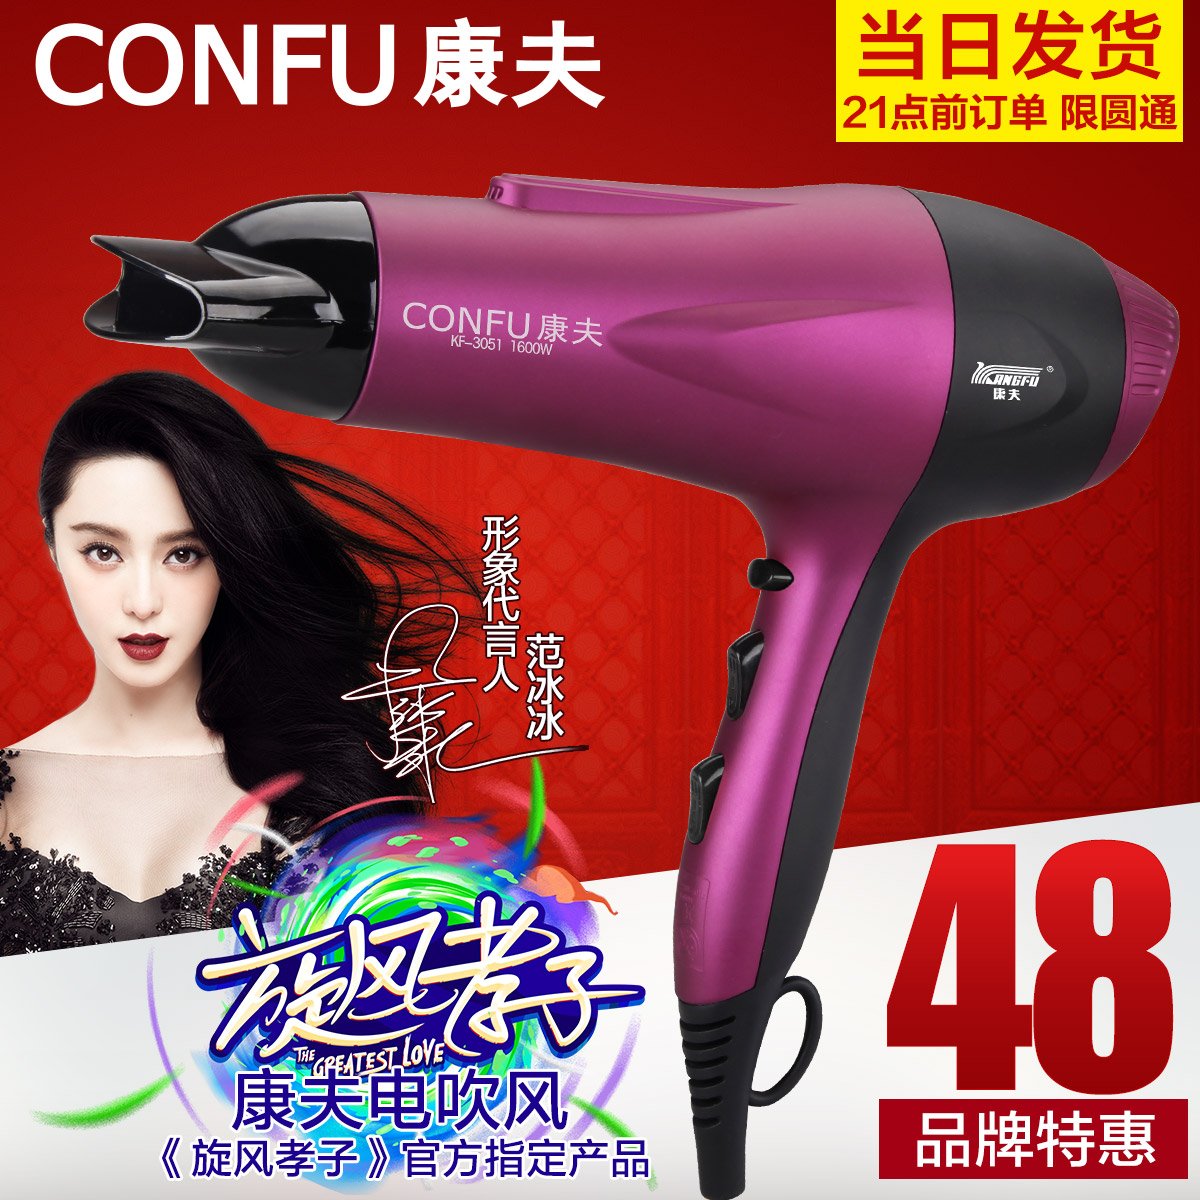 Yasuo hair dryer hair dryer student dormitory with a small power mute hair dryer hair dryer household hair dryer hair dryer KF-3051